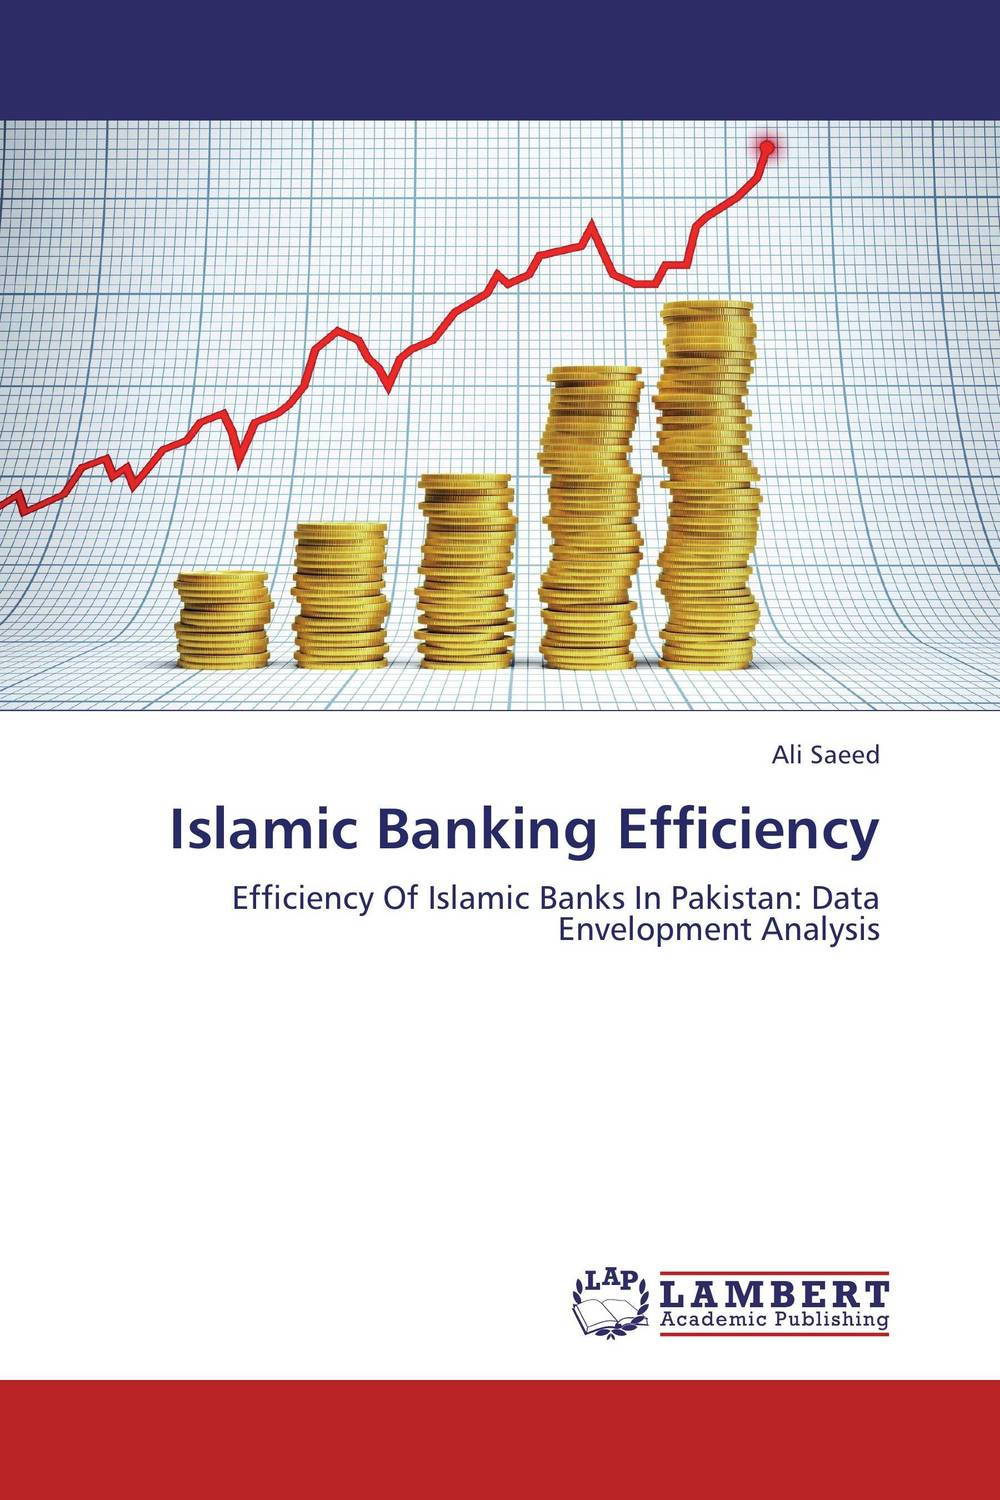 Islamic Banking Efficiency mayer boch 143 092 дворники пластик 2шт 18